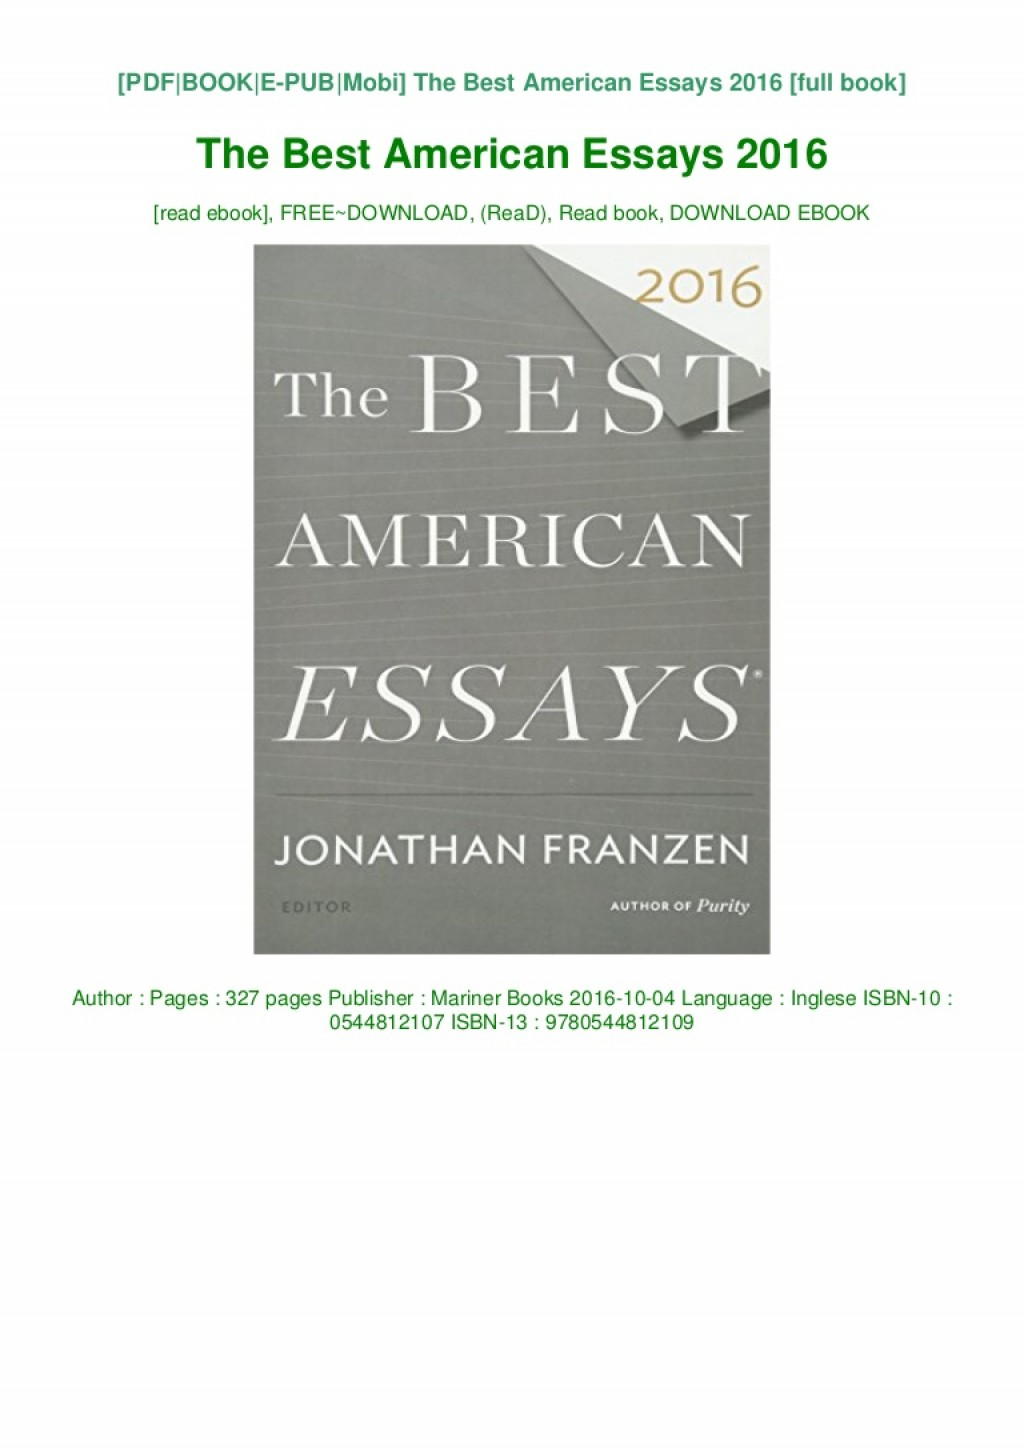 014 The Best American Essays Essay Example Download Pdf Epub Audiobook Ebook Thumbnail Wonderful 2013 Of Century Sparknotes 2017 Large